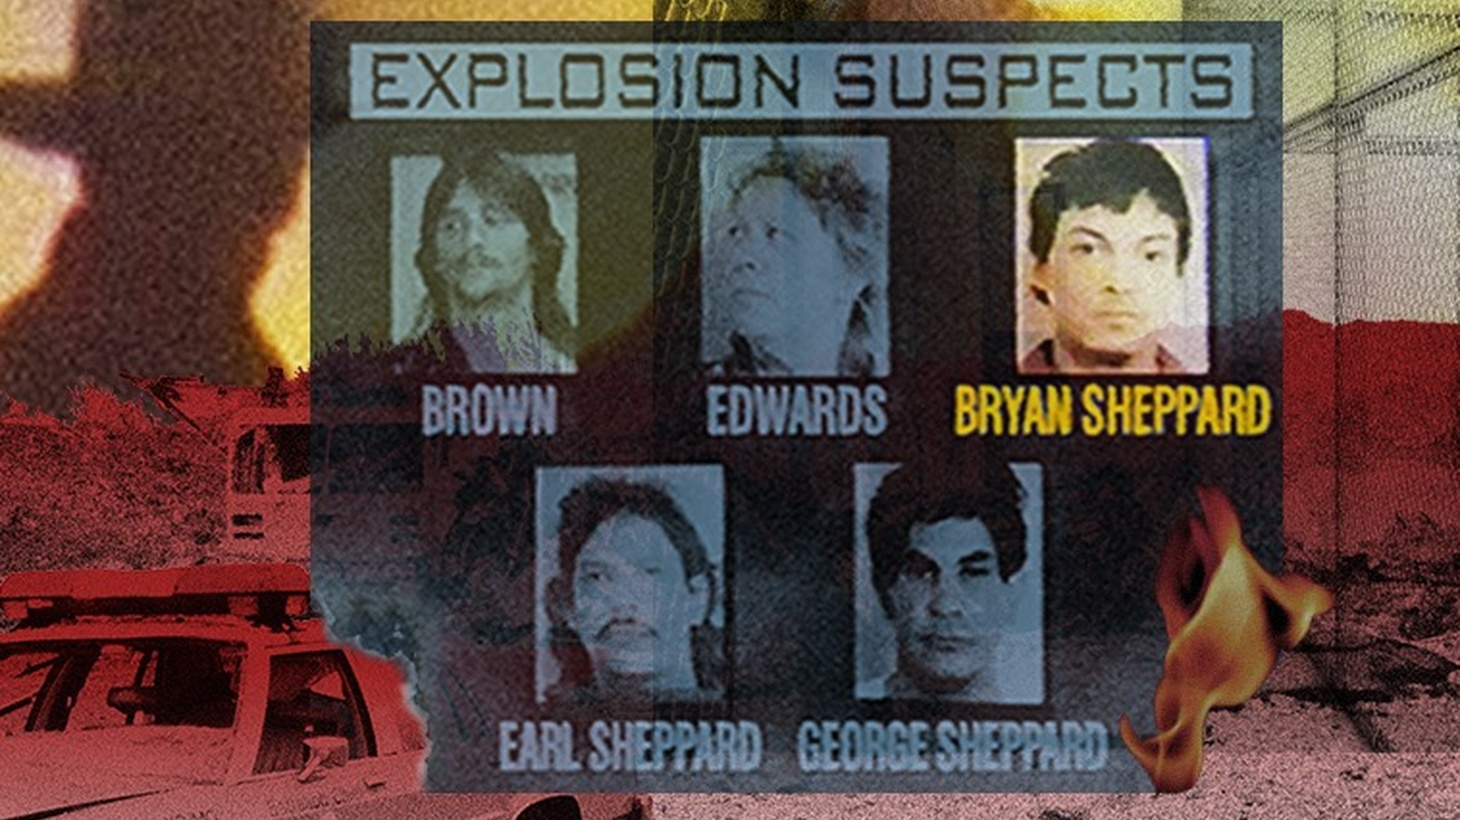 In 1988, two powerful explosions shook Kansas City, Missouri, killing six firefighters. Nine years later, five people were convicted of arson and sent to prison for life – but were they innocent? Reveal investigates problems in the case and whether federal agents pressured witnesses to lie. We also follow the life of one of the defendants and his bid for freedom.